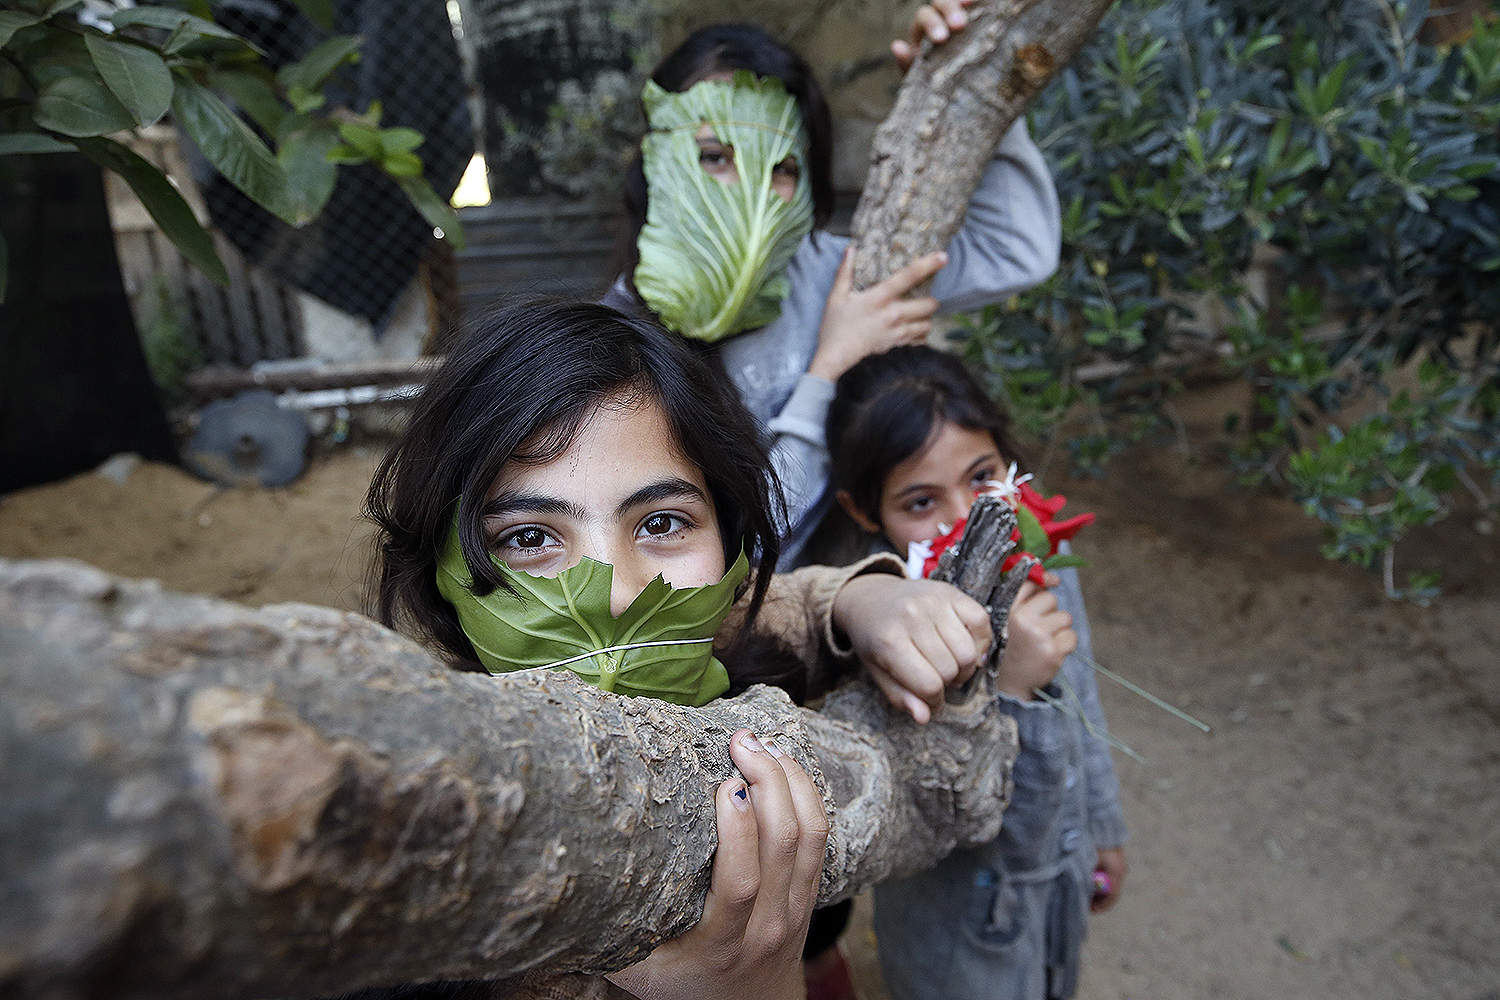 Amid the coronavirus pandemic, Palestinian children pose with makeshift masks made of cabbage while cooking at home with their family in Beit Lahia, a city in the Gaza Strip, on April 16. MOHAMMED ABED/AFP via Getty Images